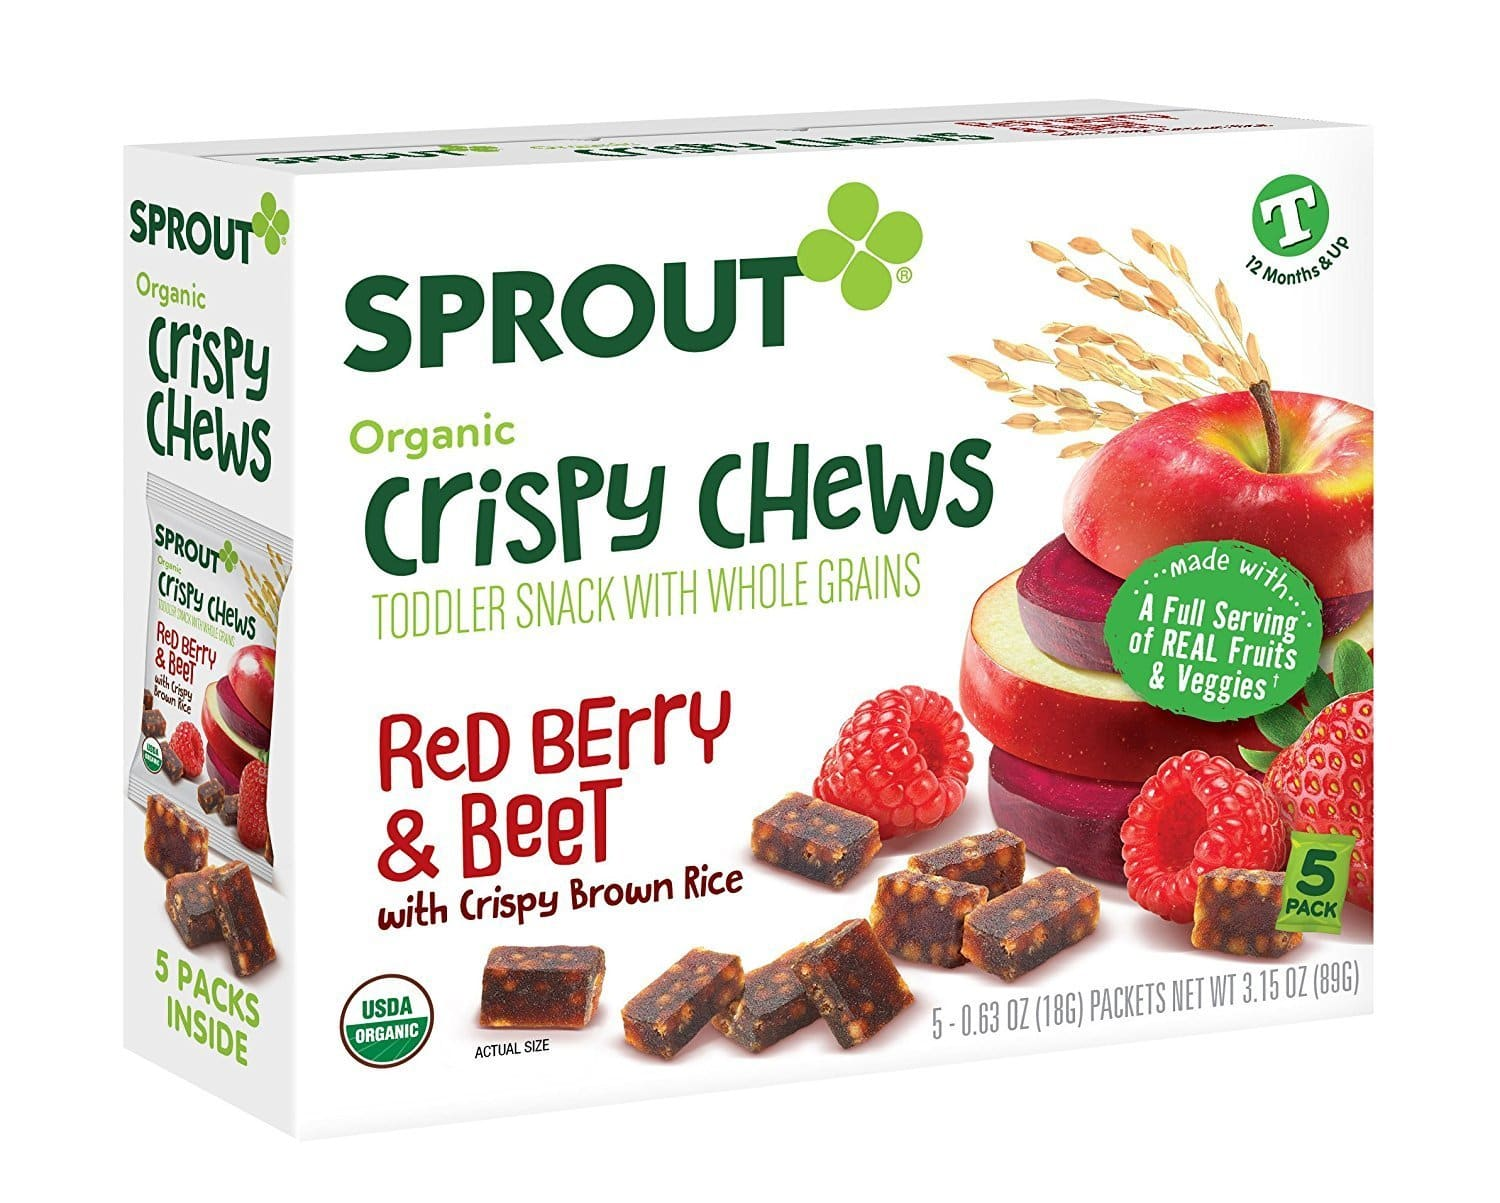 Sprout Crispy Chews Organic Toddler Snacks, Red Berry & Beet, Case of 50 Crispy Chews (10 boxes, 5 packets per box) -- 35% off and then 20% off with SnS $12.72